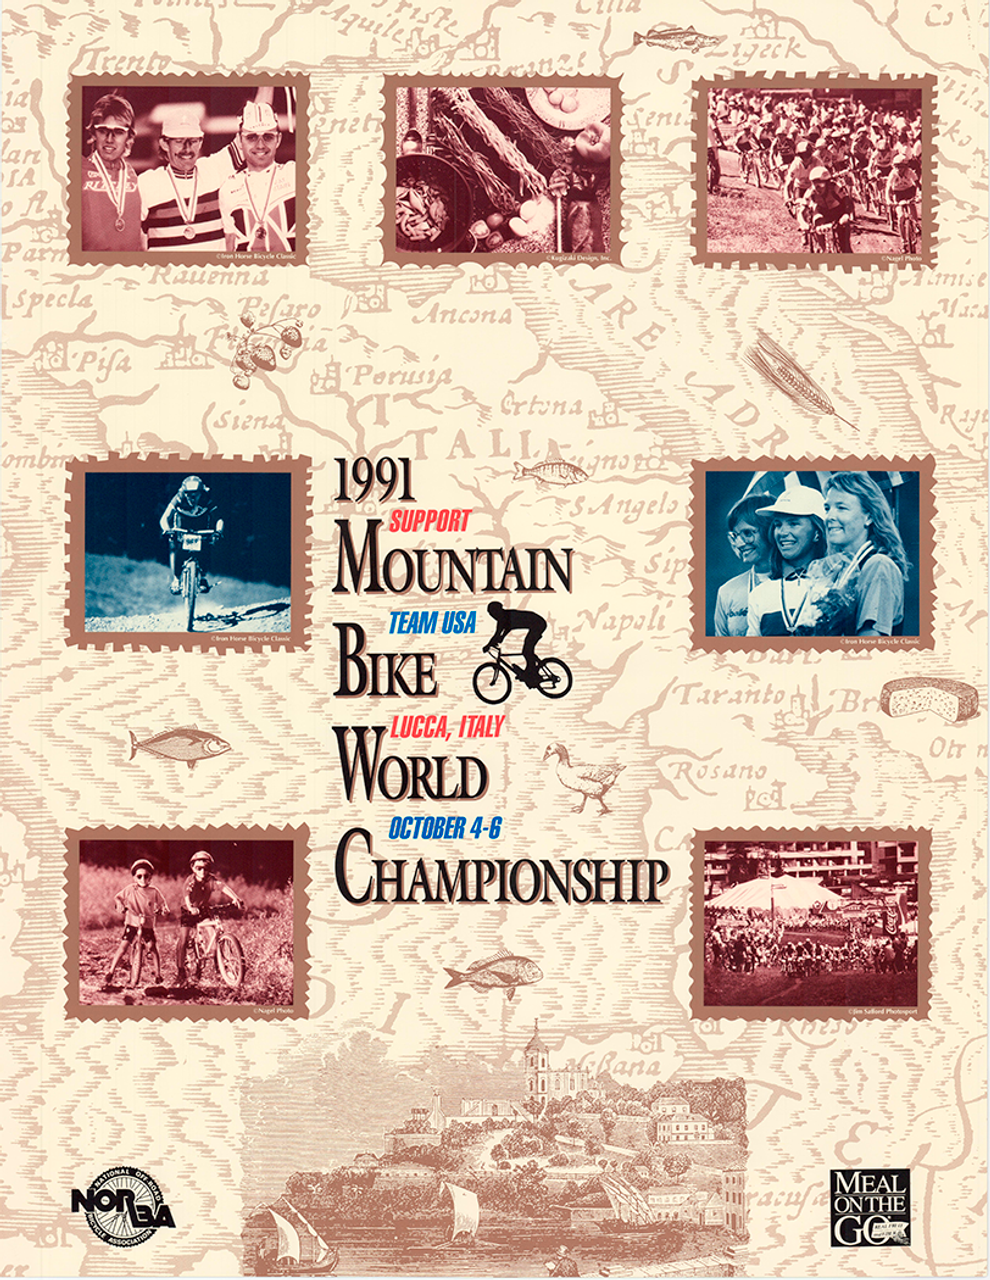 1991 World Mountain Bike Championships, Lucca Italy Original Vintage Bicycle Poster